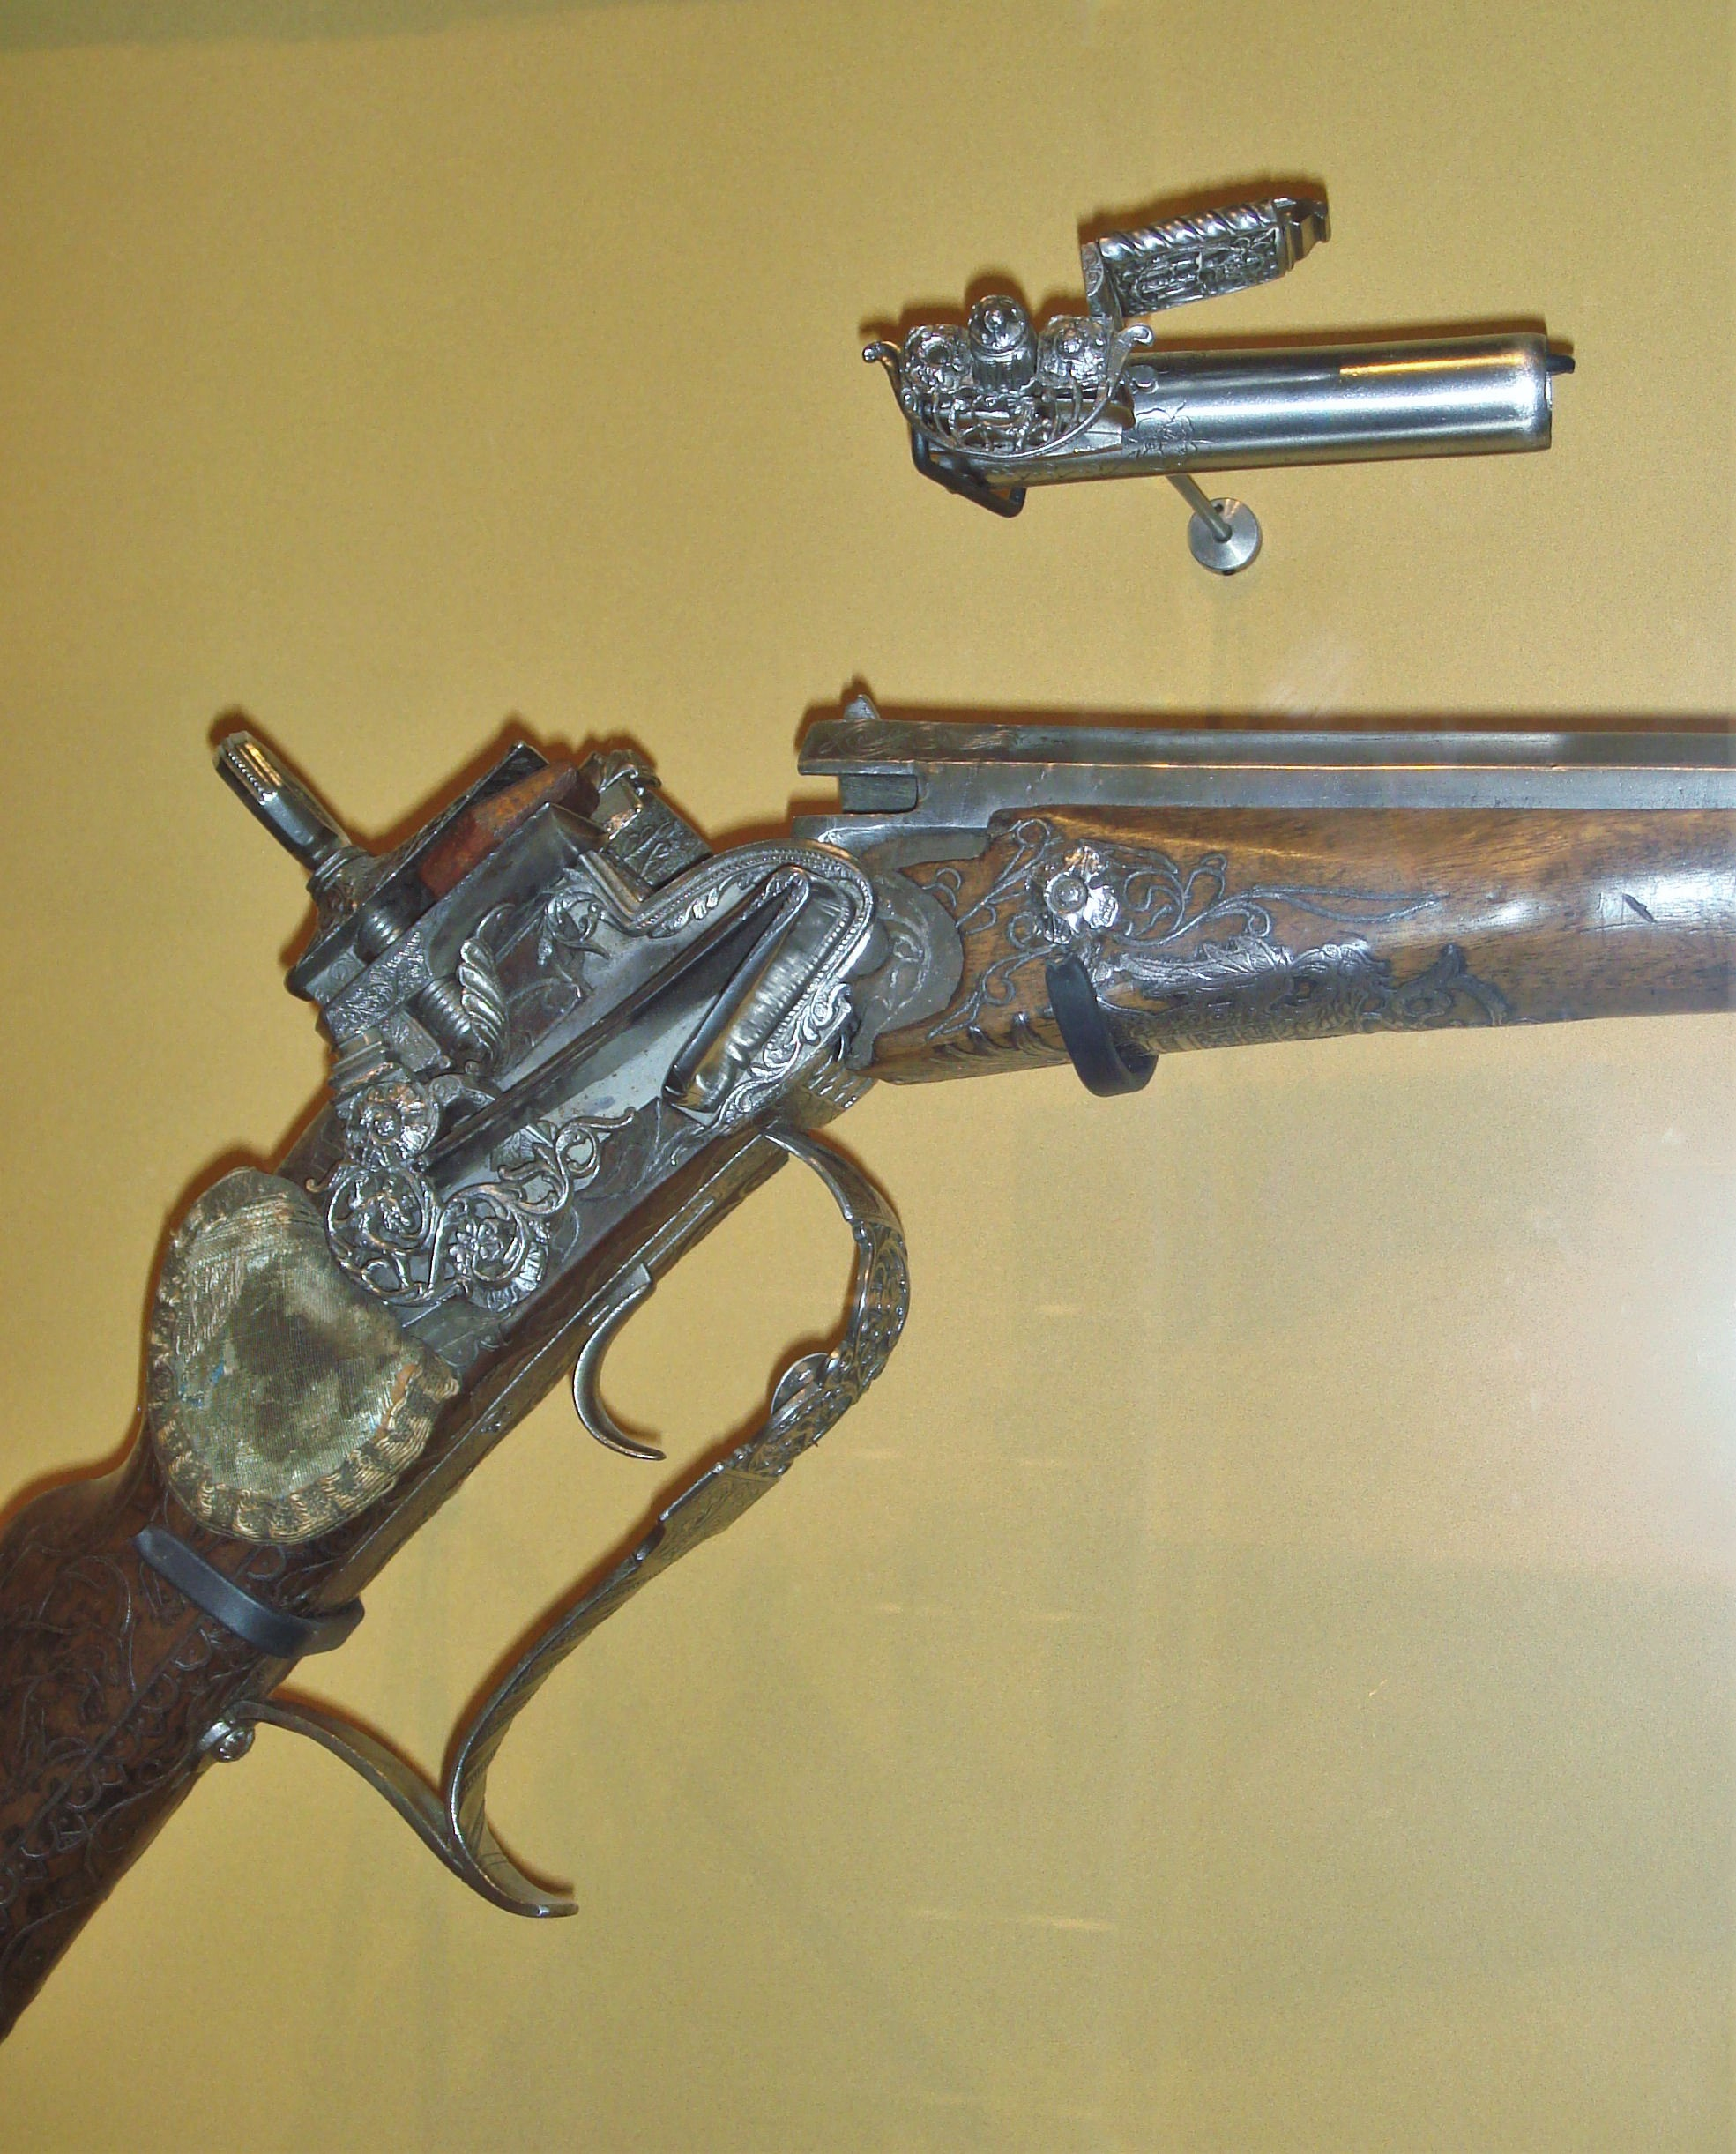 breech civil essay loading rifle war Breech-loading rifles was the weapon that ultimately changed and revolutionized warfare the civil war is called the first modern war for many reasons one of these.